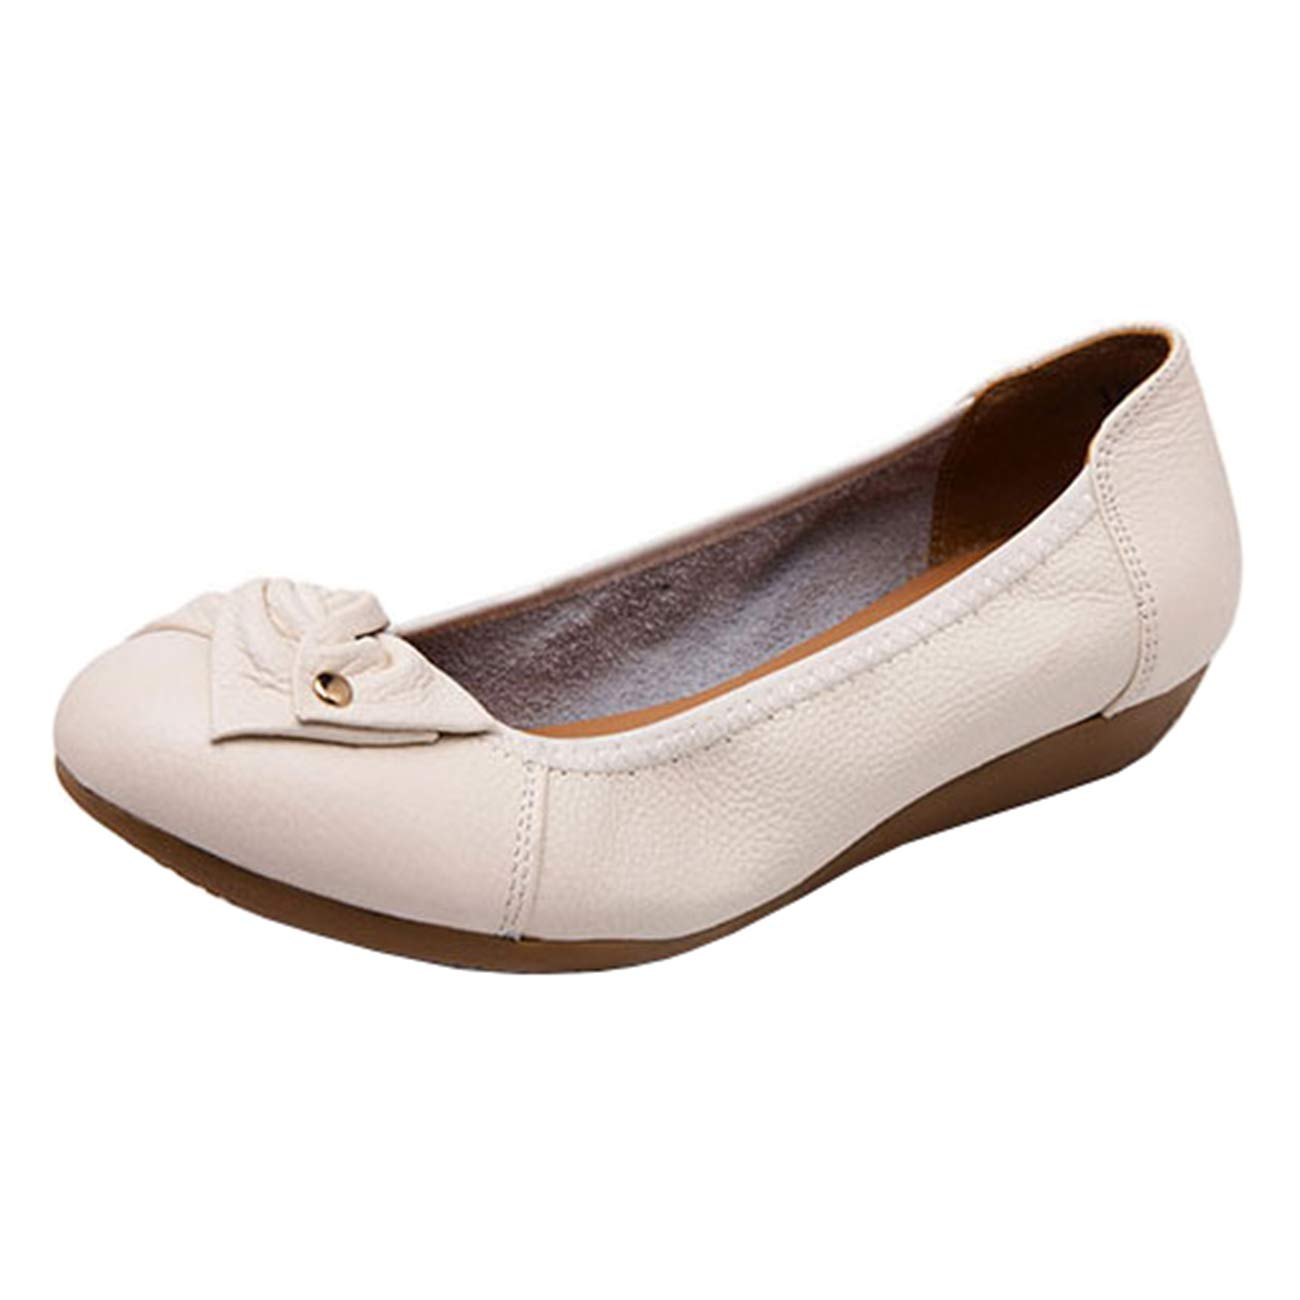 d8f93f196 Clothing, Shoes & Jewelry Women Mashiaoyi Womens Round-Toe Bowknot Flat Slip-on  Ballet Flats